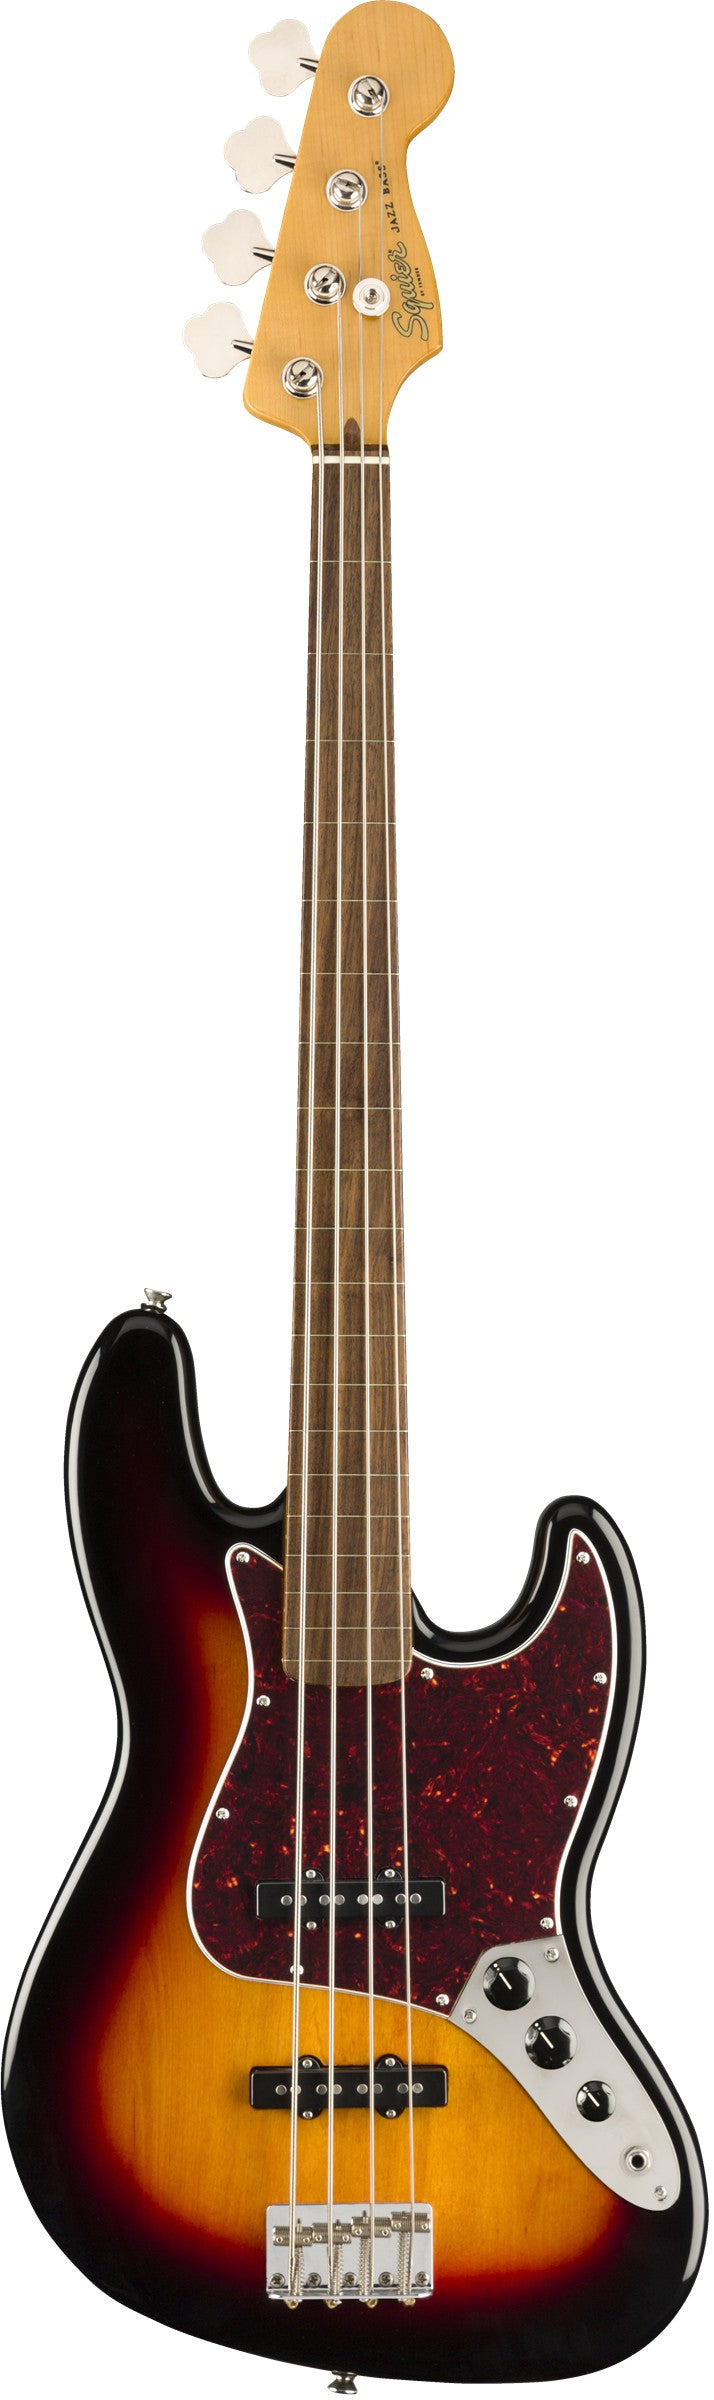 Squier Classic Vibe '60's Fretless Jazz Bass - 3-Color Sunburst, Laurel Fingerboard